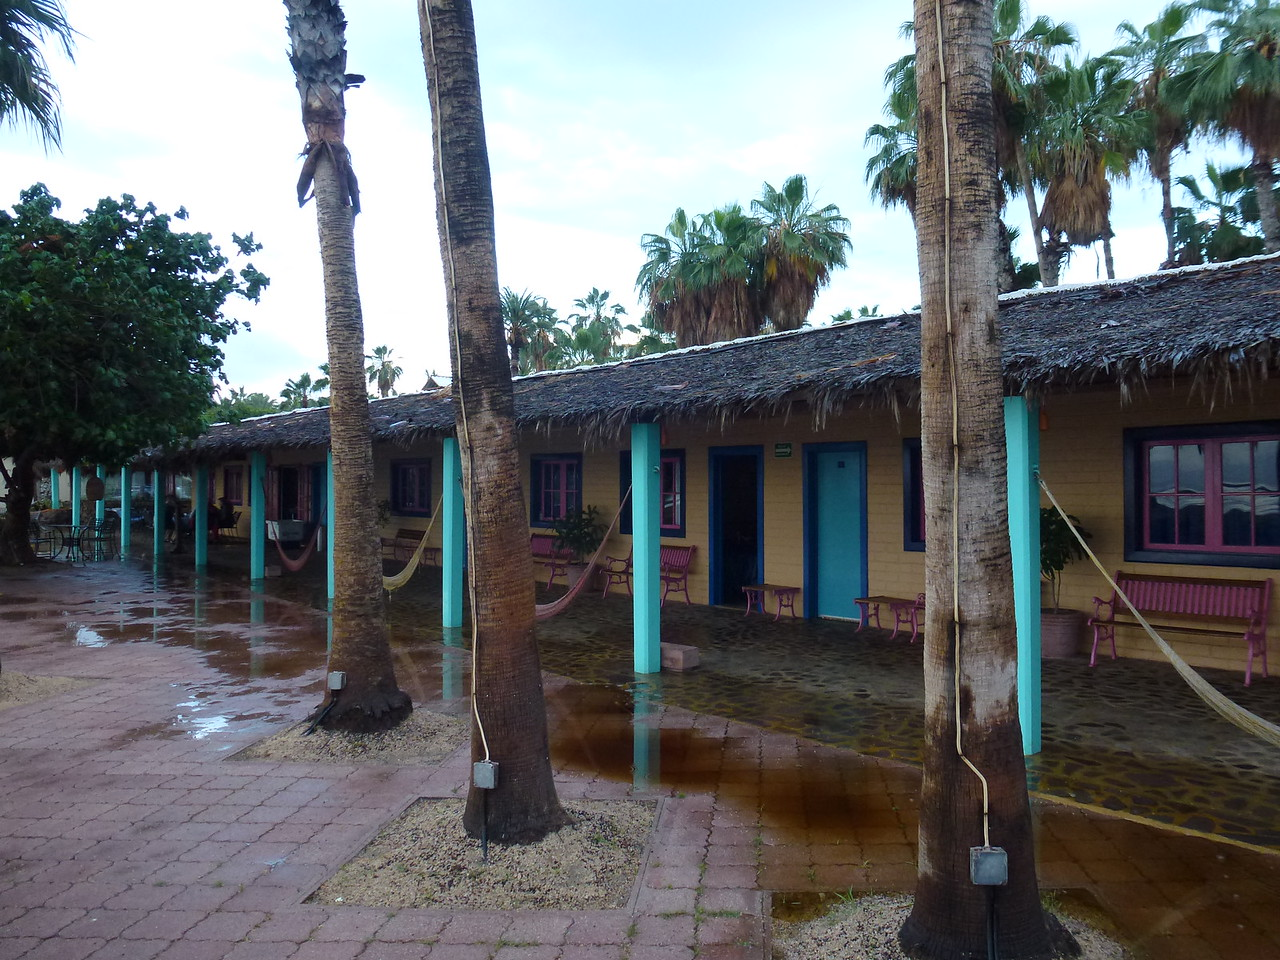 Oasis hotel after a beautiful little rain .<br /> <br /> The brown water is because of the thatched roof .